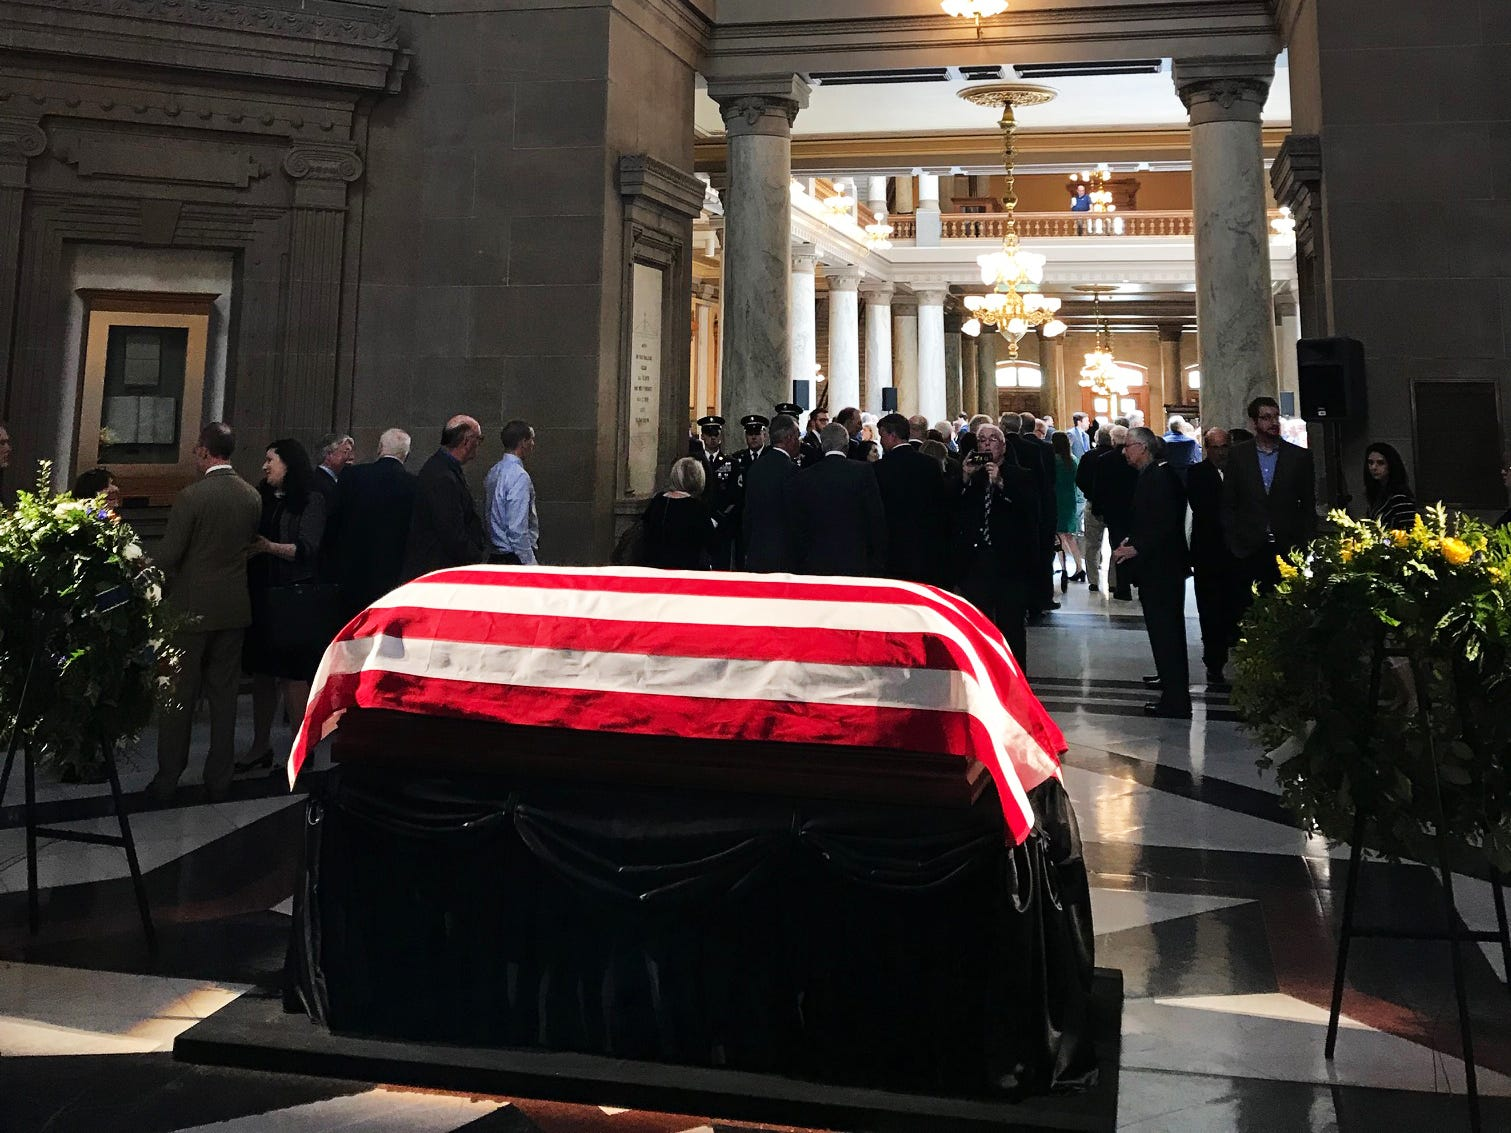 Mourners file past the body of former Senator Richard Lugar as he lies in state in the rotunda of the State Capitol in Indianapolis Tuesday, May 14, 2019.